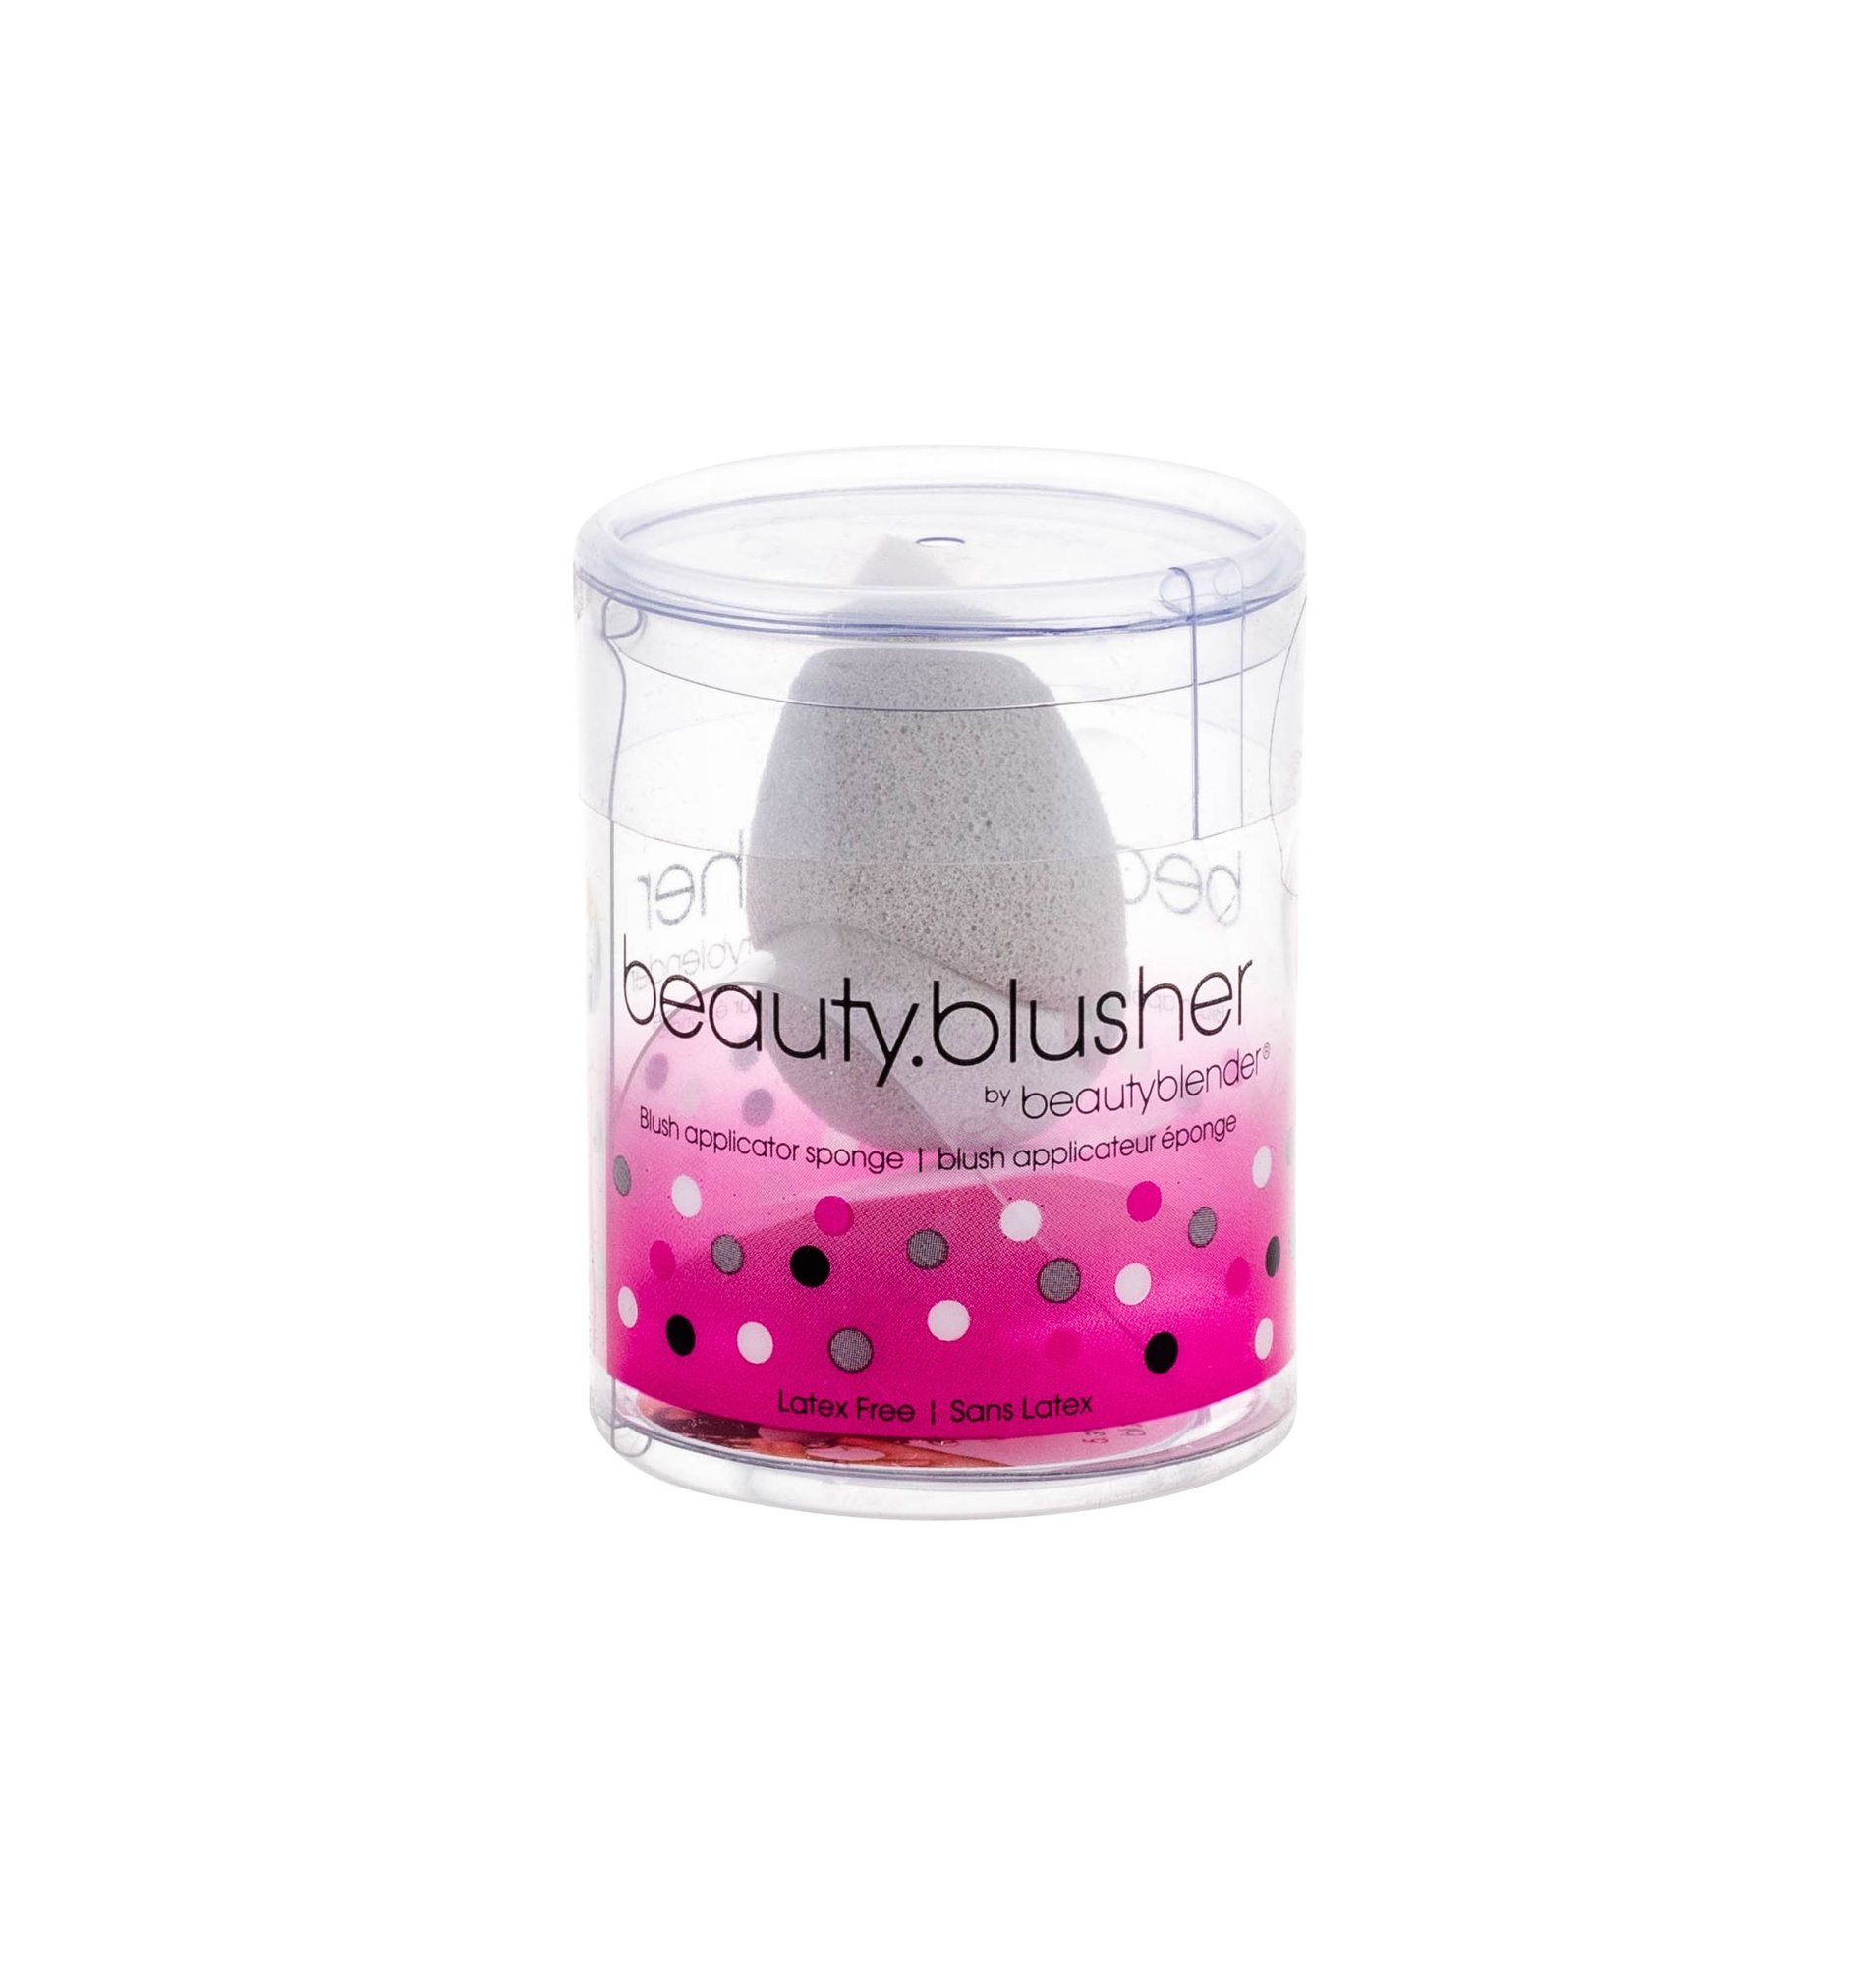 beautyblender beauty.blusher Applicator 1ml Grey